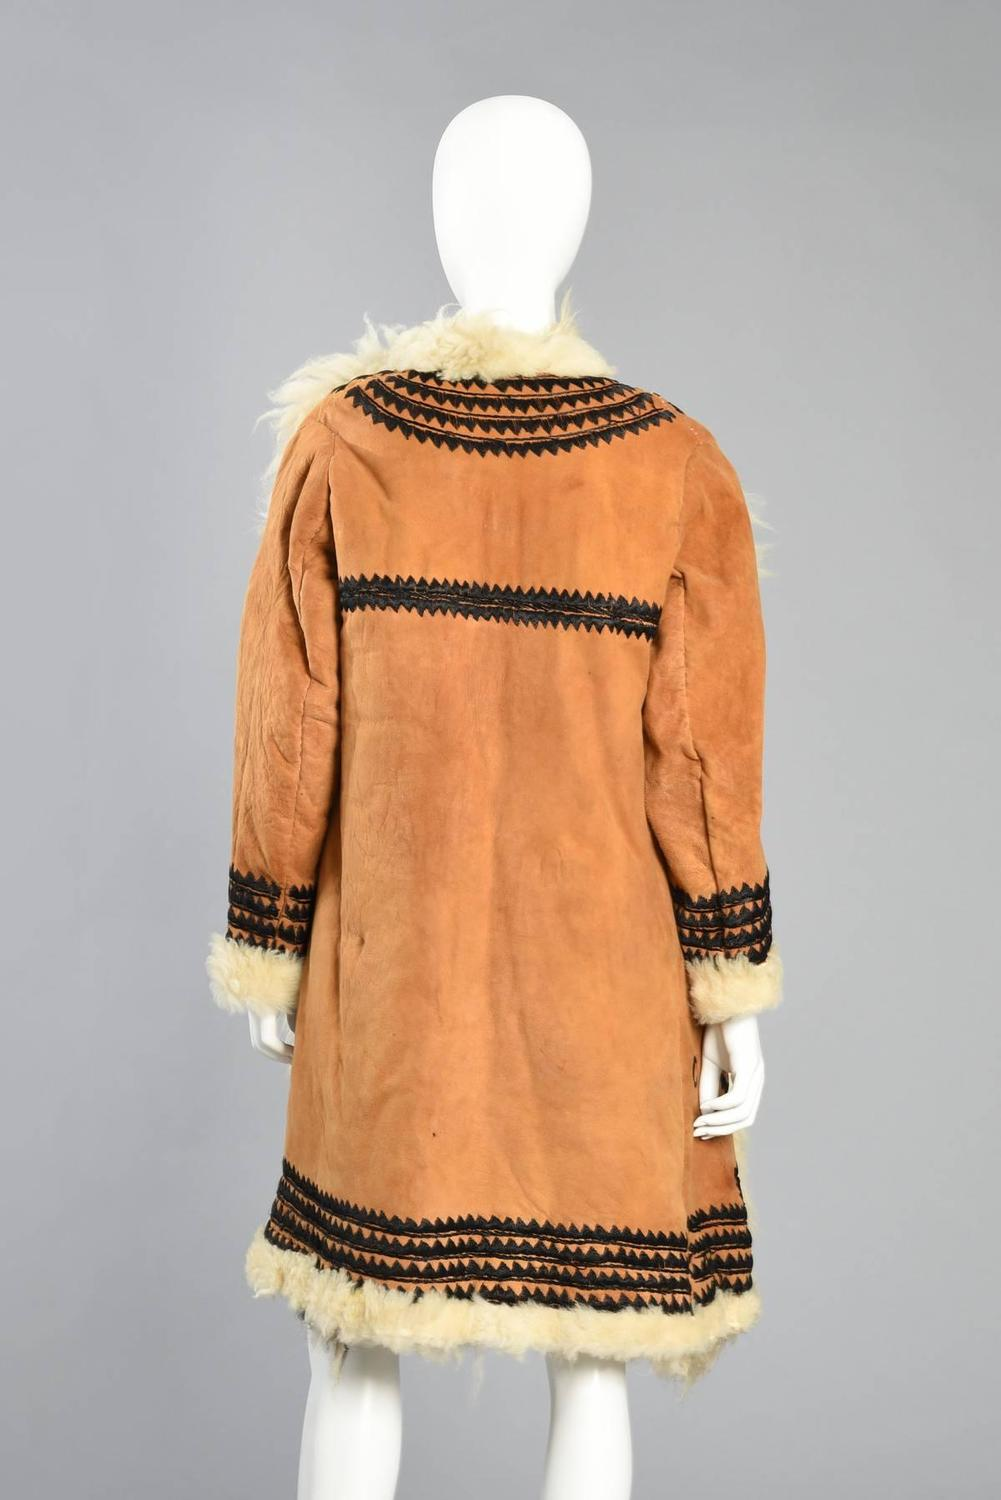 Incredible 1970s Embroidered Shearling + Suede Coat at 1stdibs